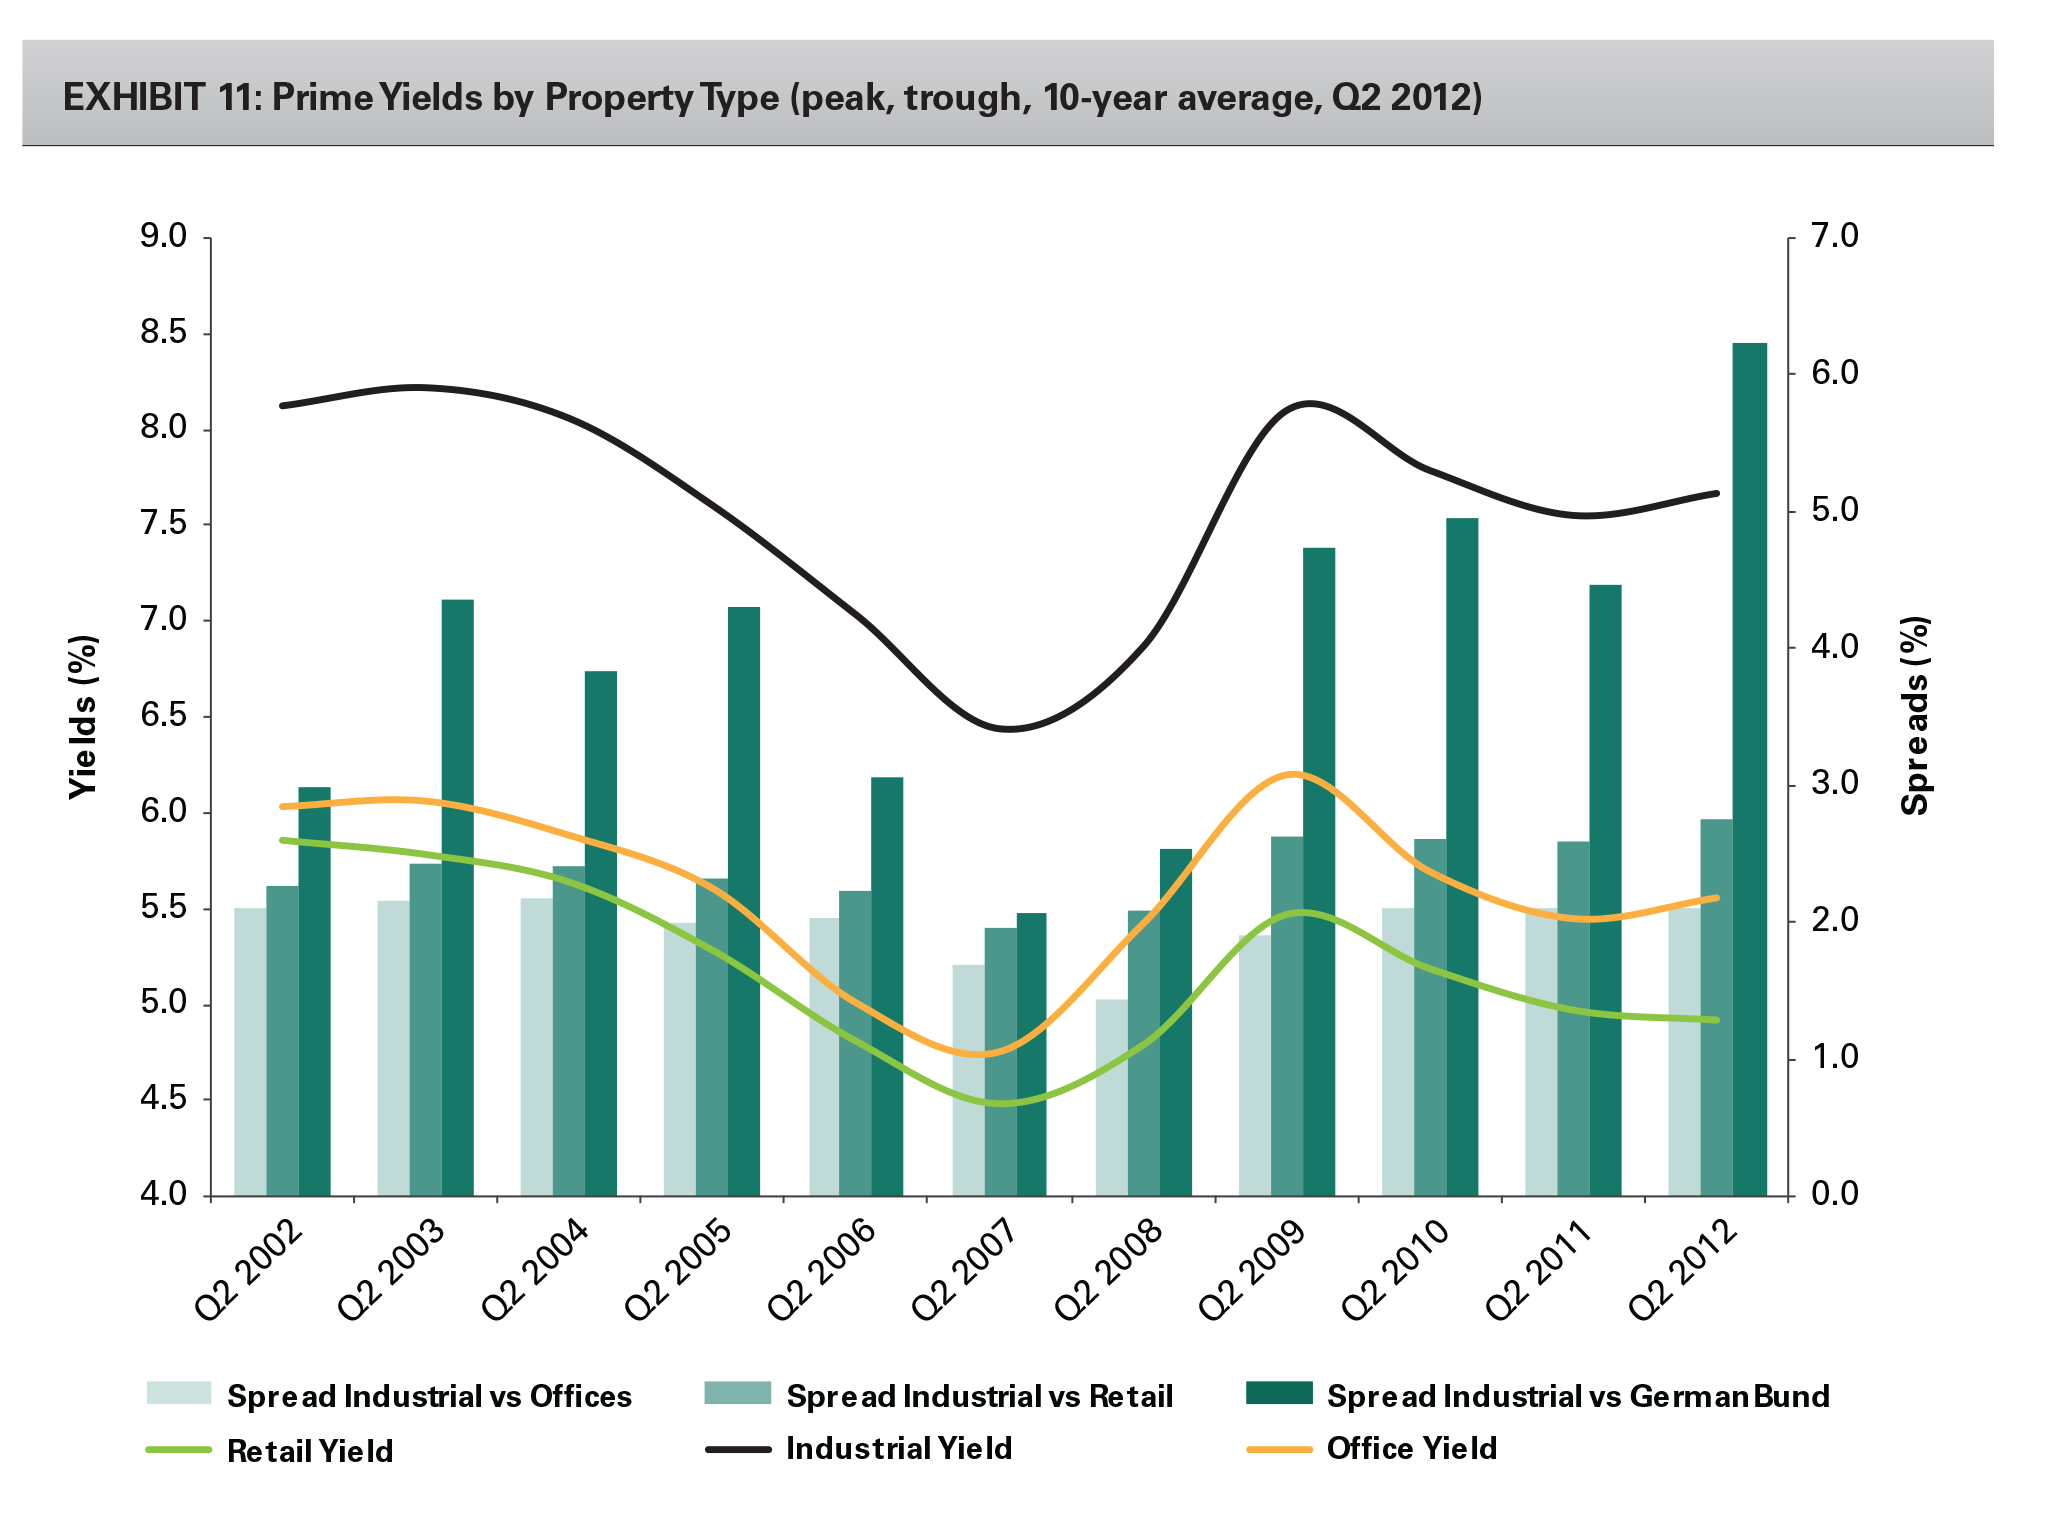 EXHIBIT 11: Prime Yields by Property Type (peak, trough, 10-year average, Q2 2012)